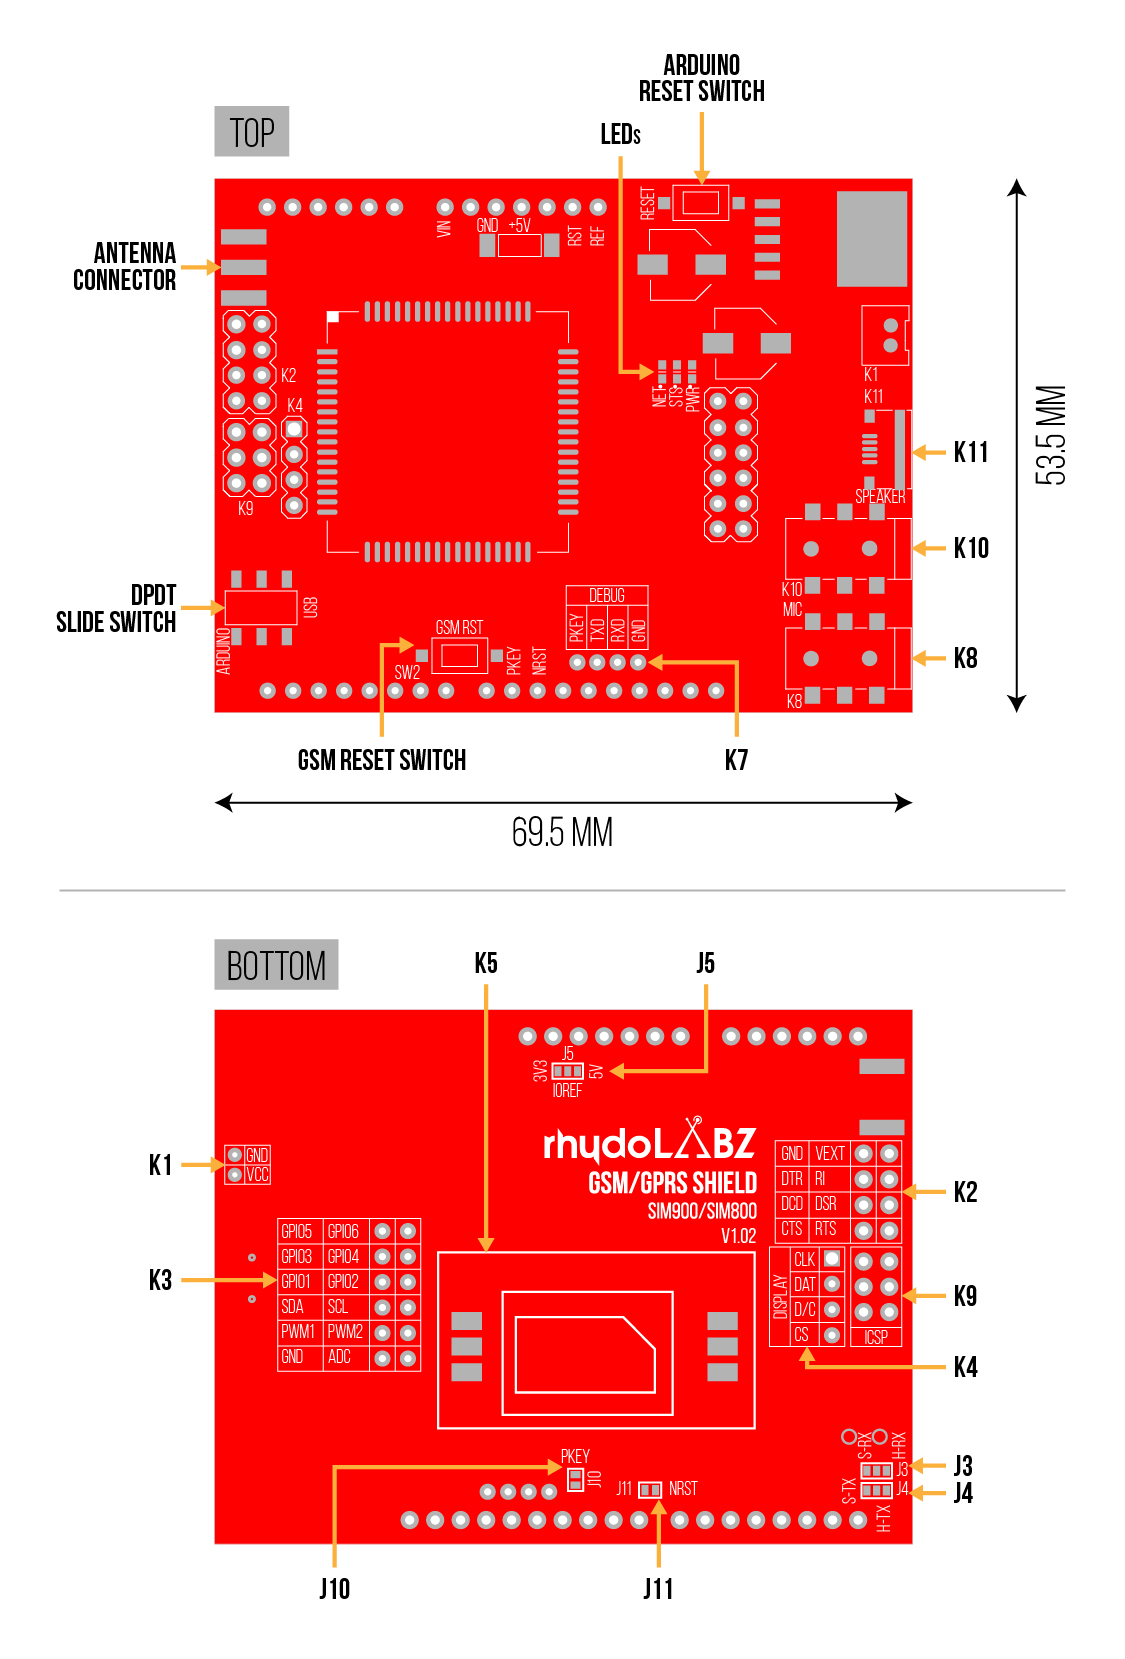 How to interface GSM/GPRS Shield (SIM900A/SIM900/SIM800) To